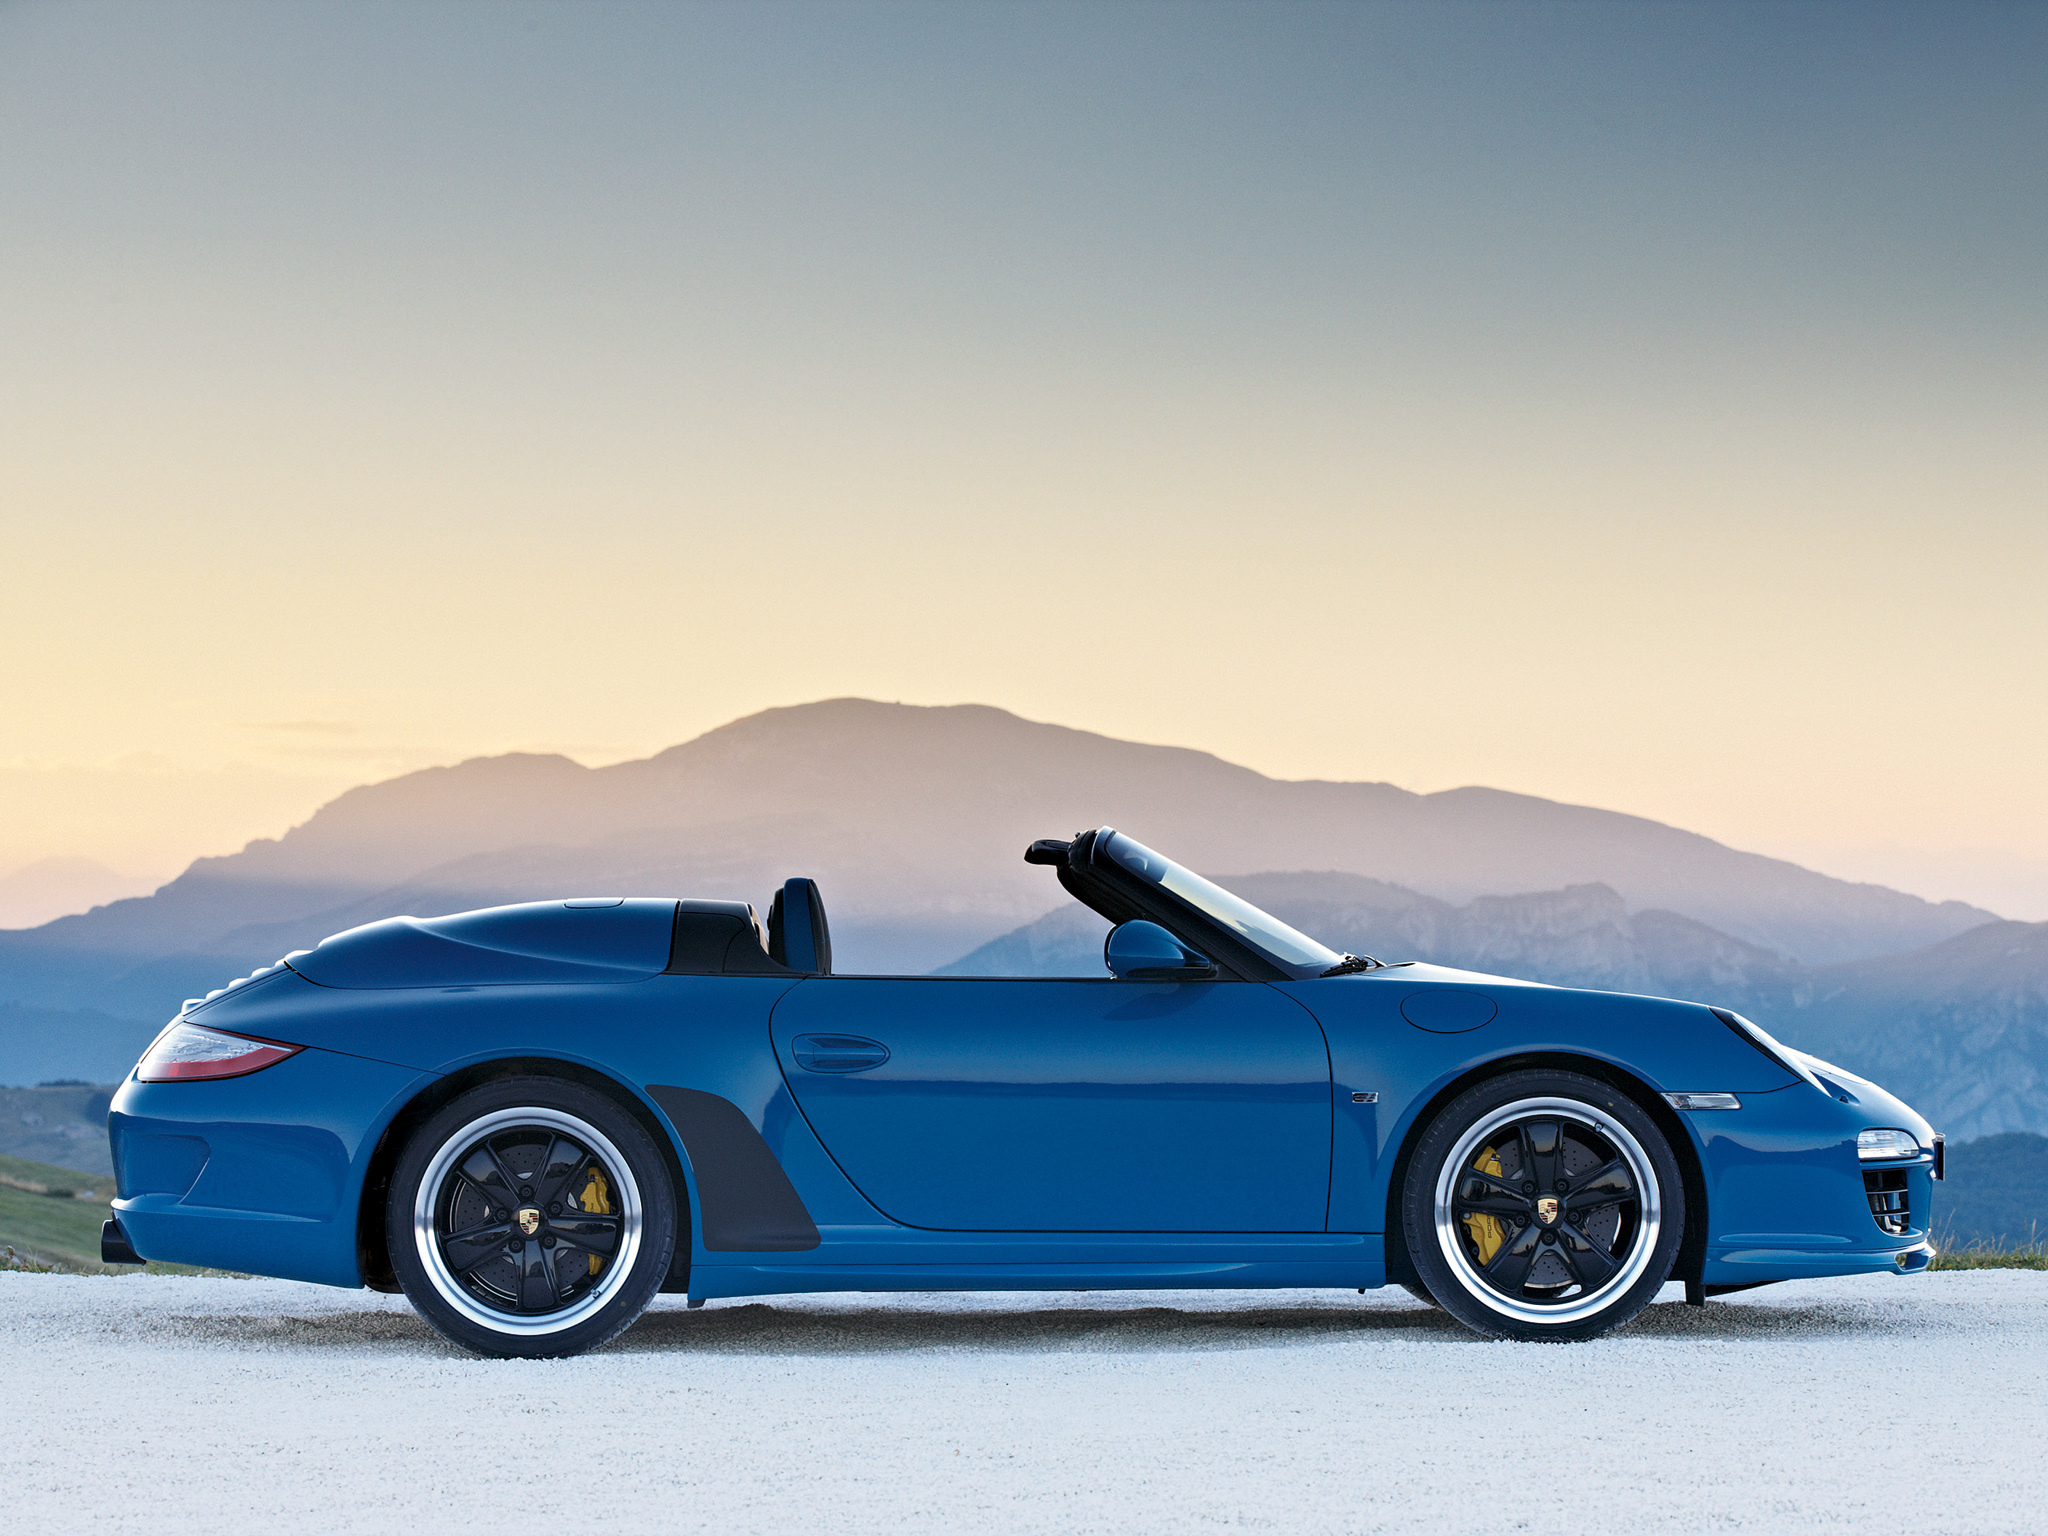 Porsche 911 Speedster Hd Desktop Wallpapers 4k Hd